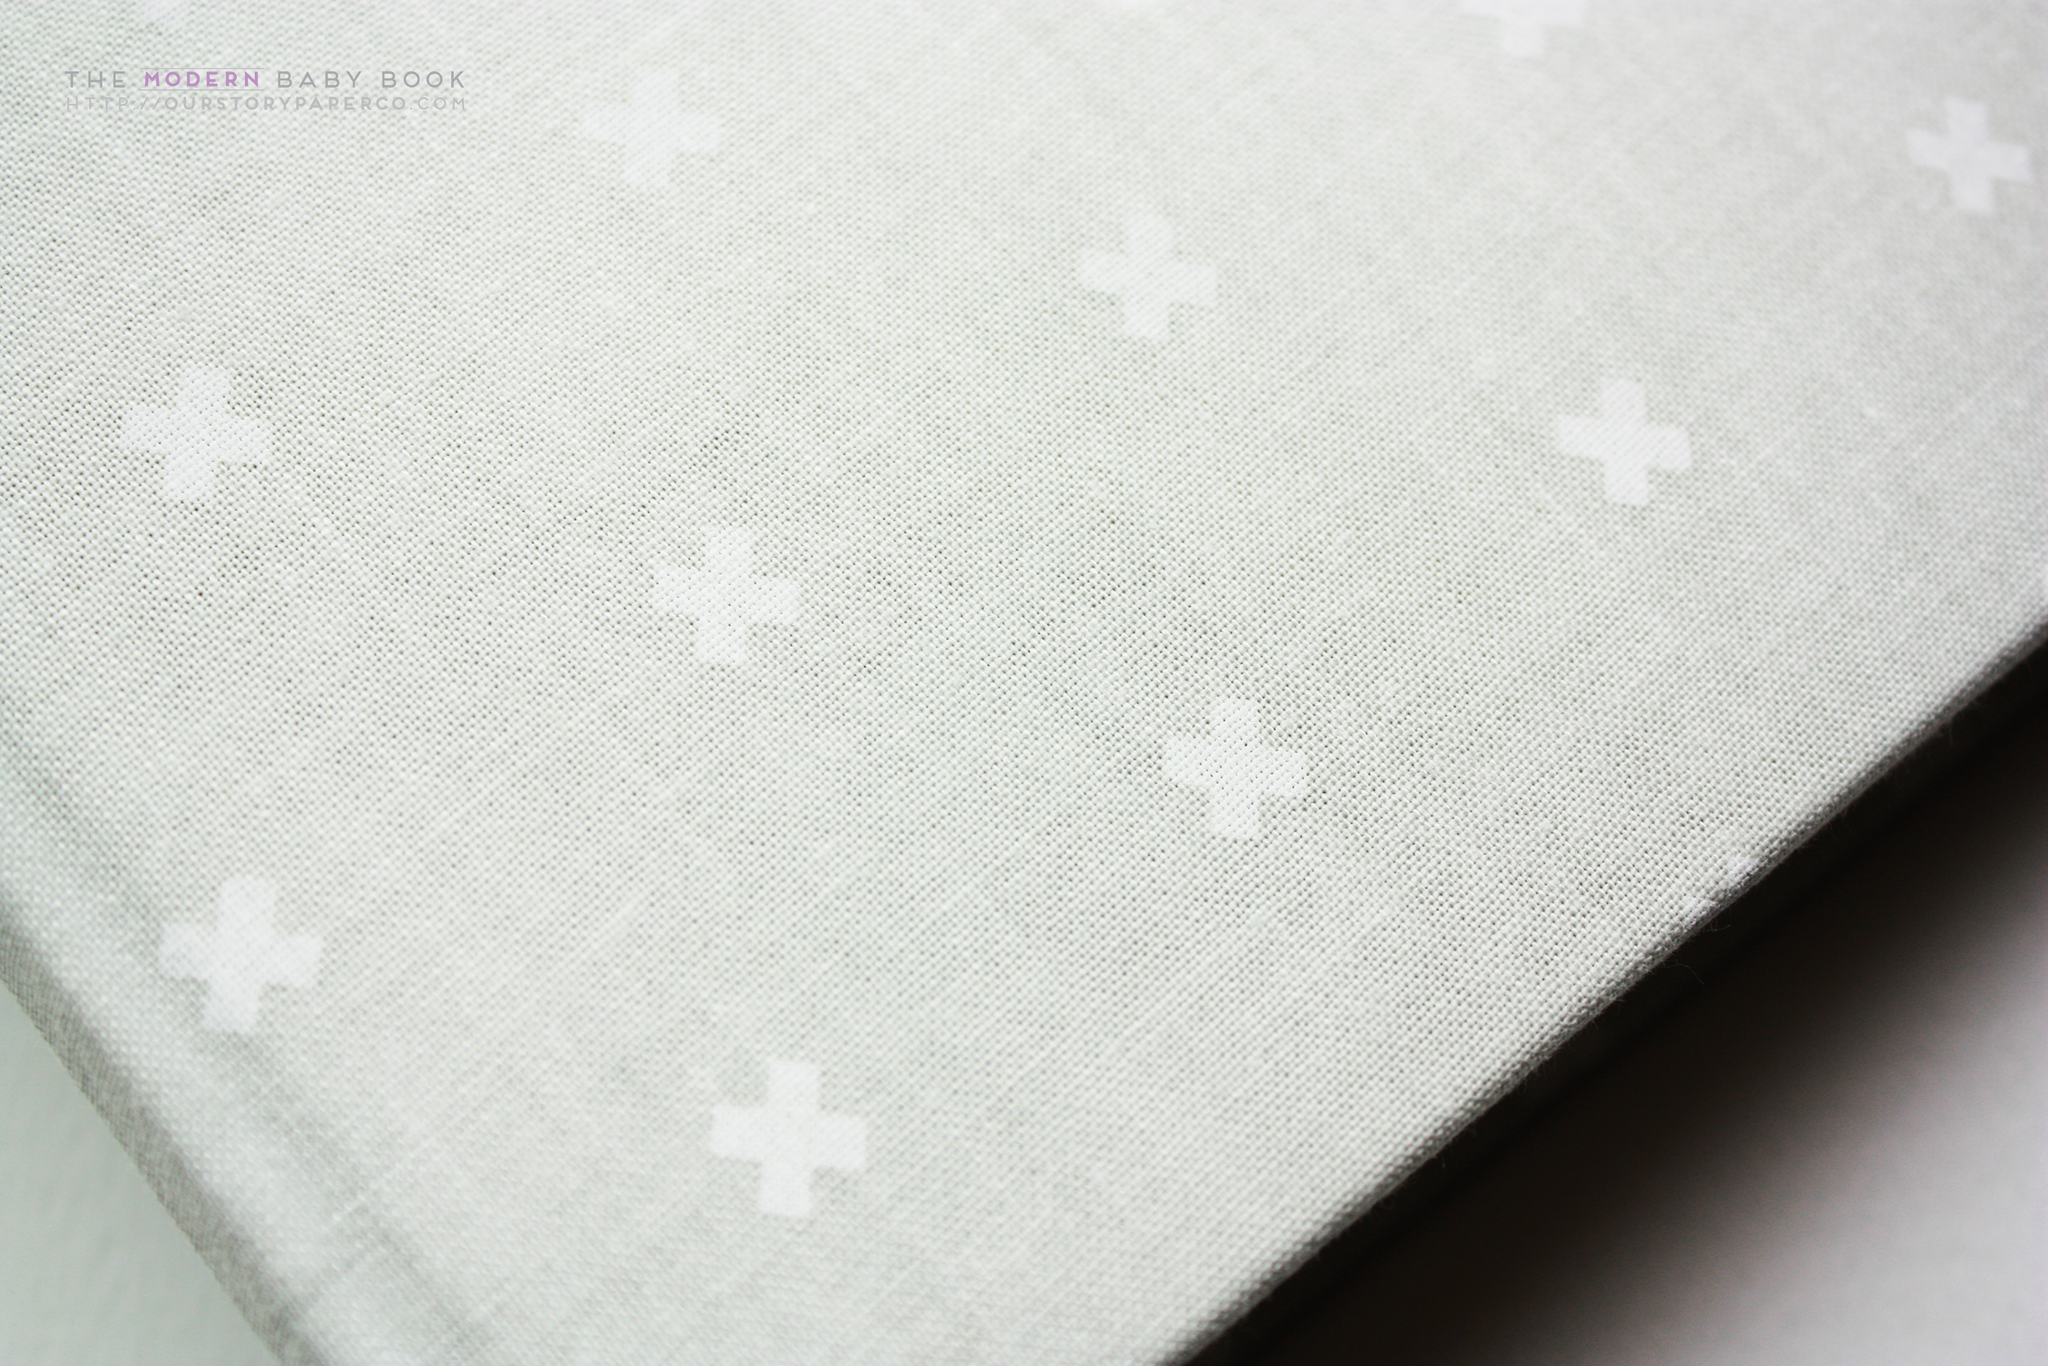 Natural Beige Criss Cross  Modern Baby Book - Our Story Paper Co.